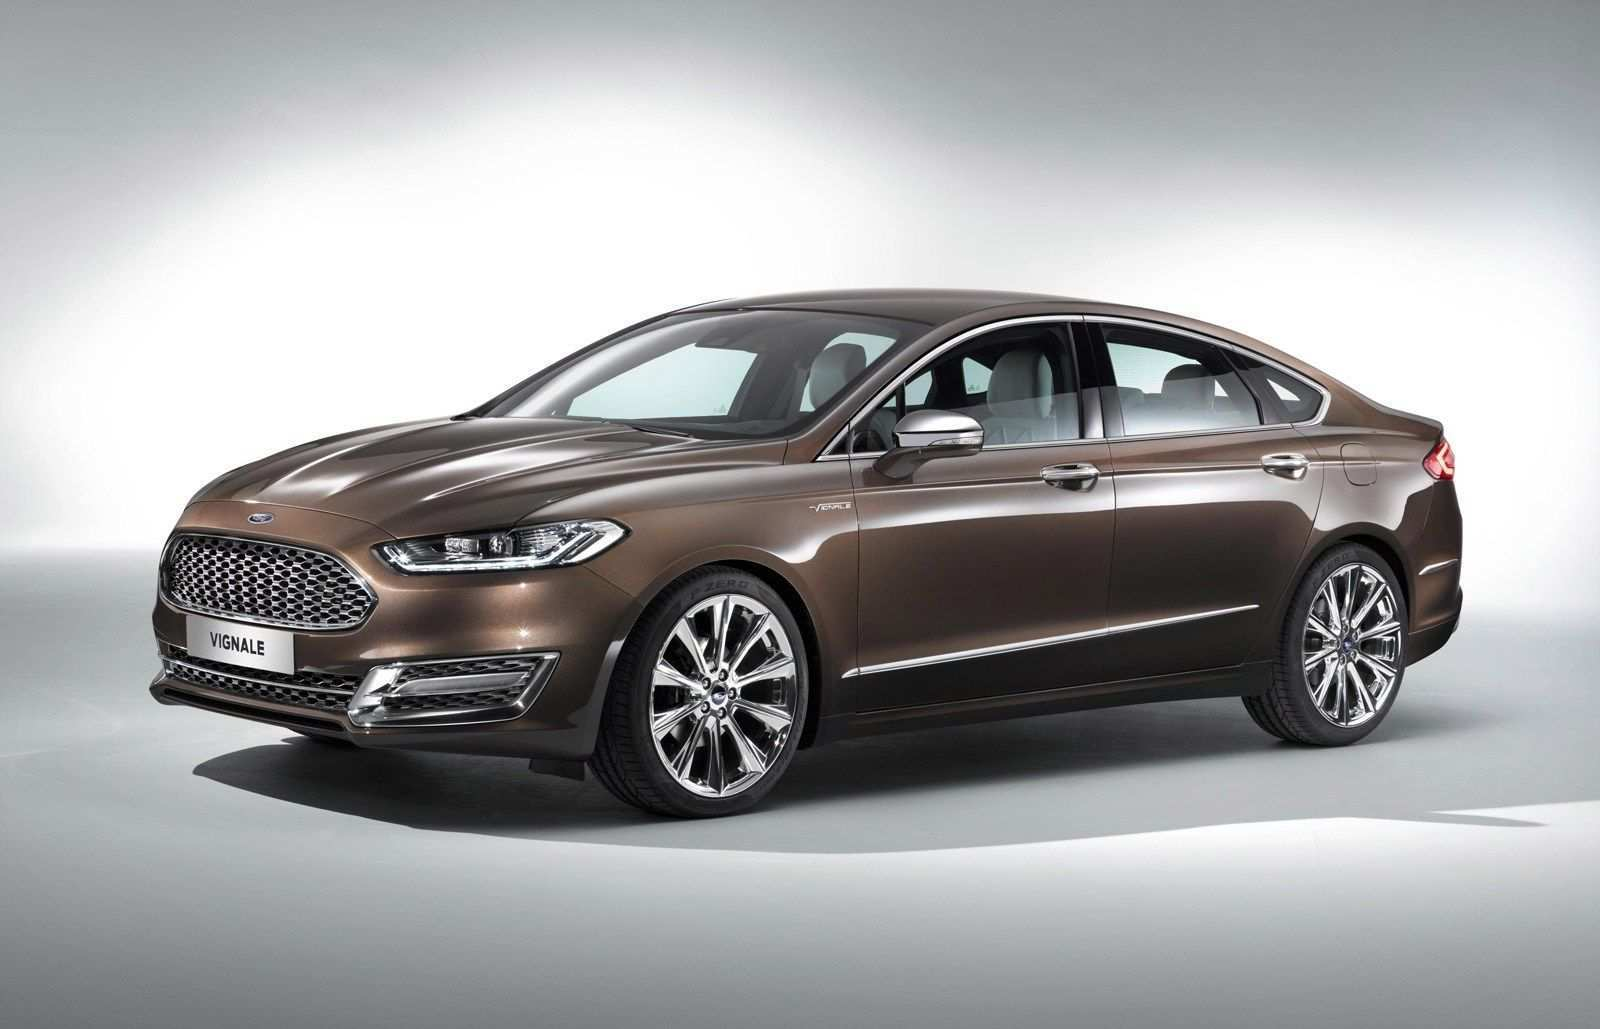 62 The 2020 Ford Mondeo Vignale Reviews by 2020 Ford Mondeo Vignale